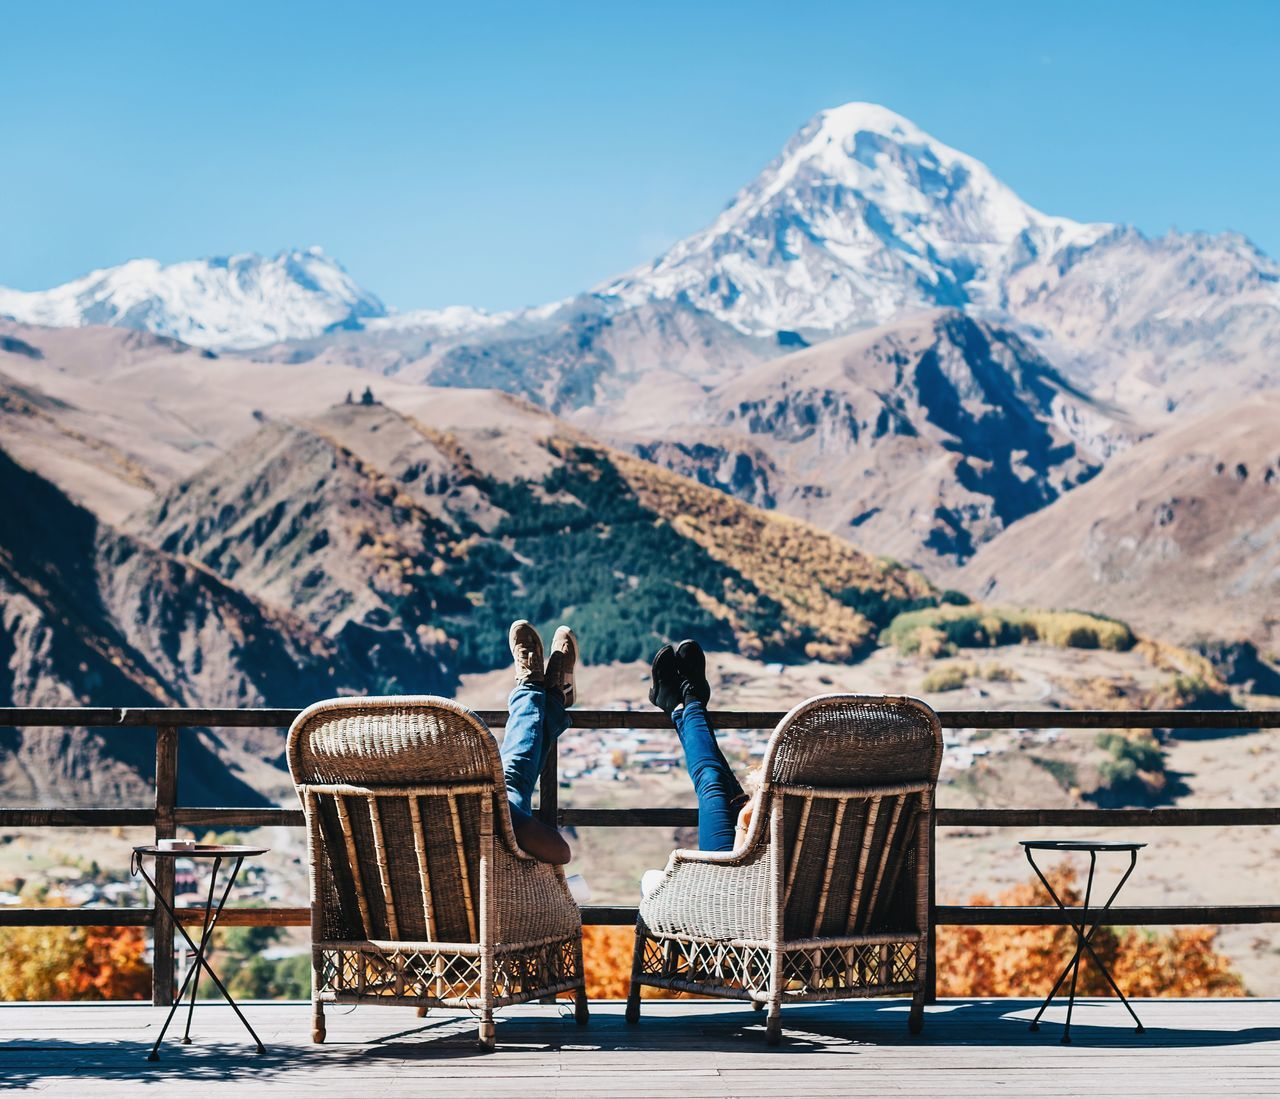 People Relaxing Against Snowcapped Mountain And Clear Blue Sky